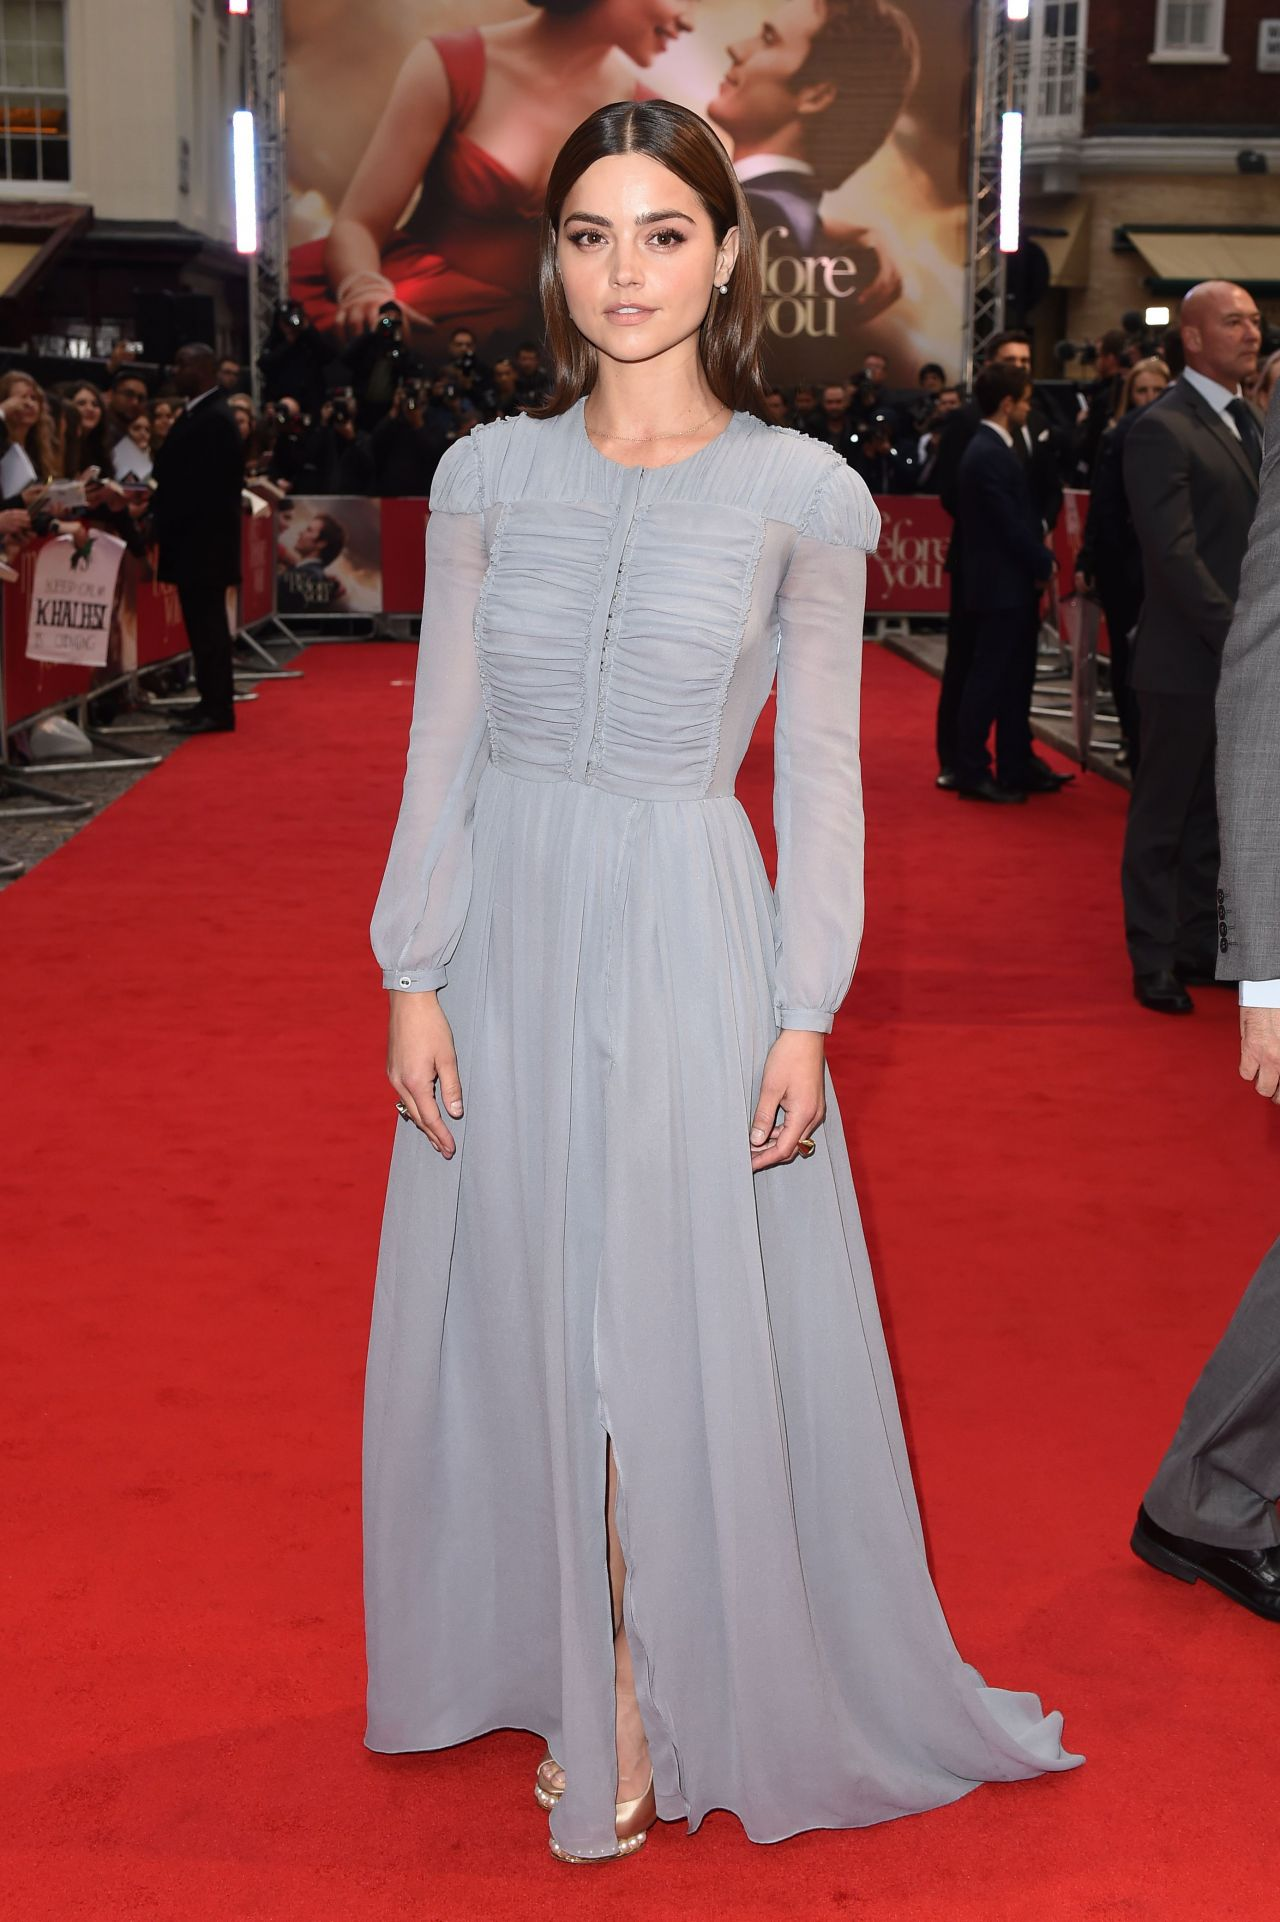 JennaLouise Coleman  Me Before You Premiere in London UK